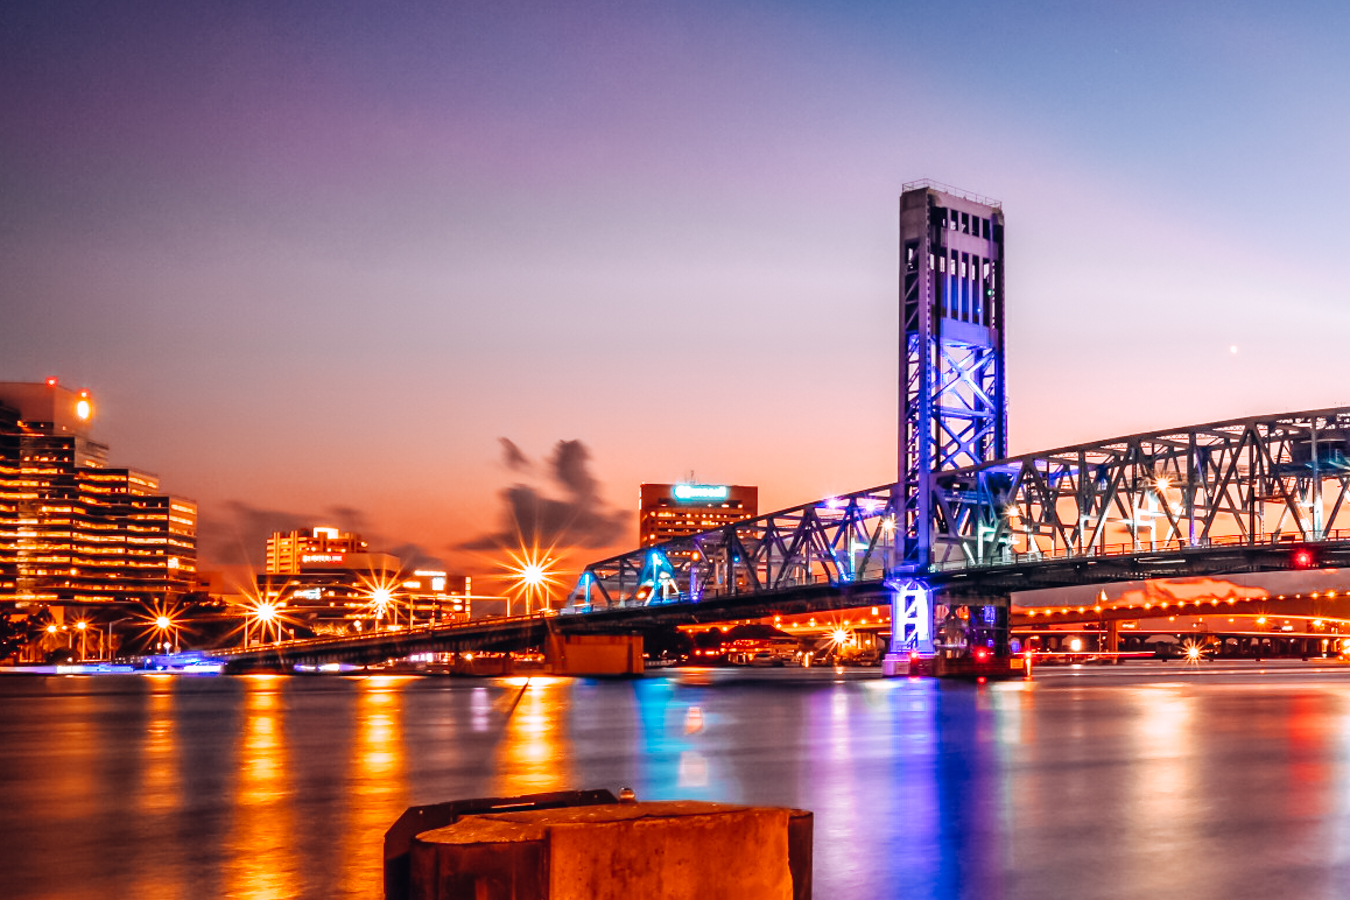 Bridge and buildings in Jacksonville in the evening